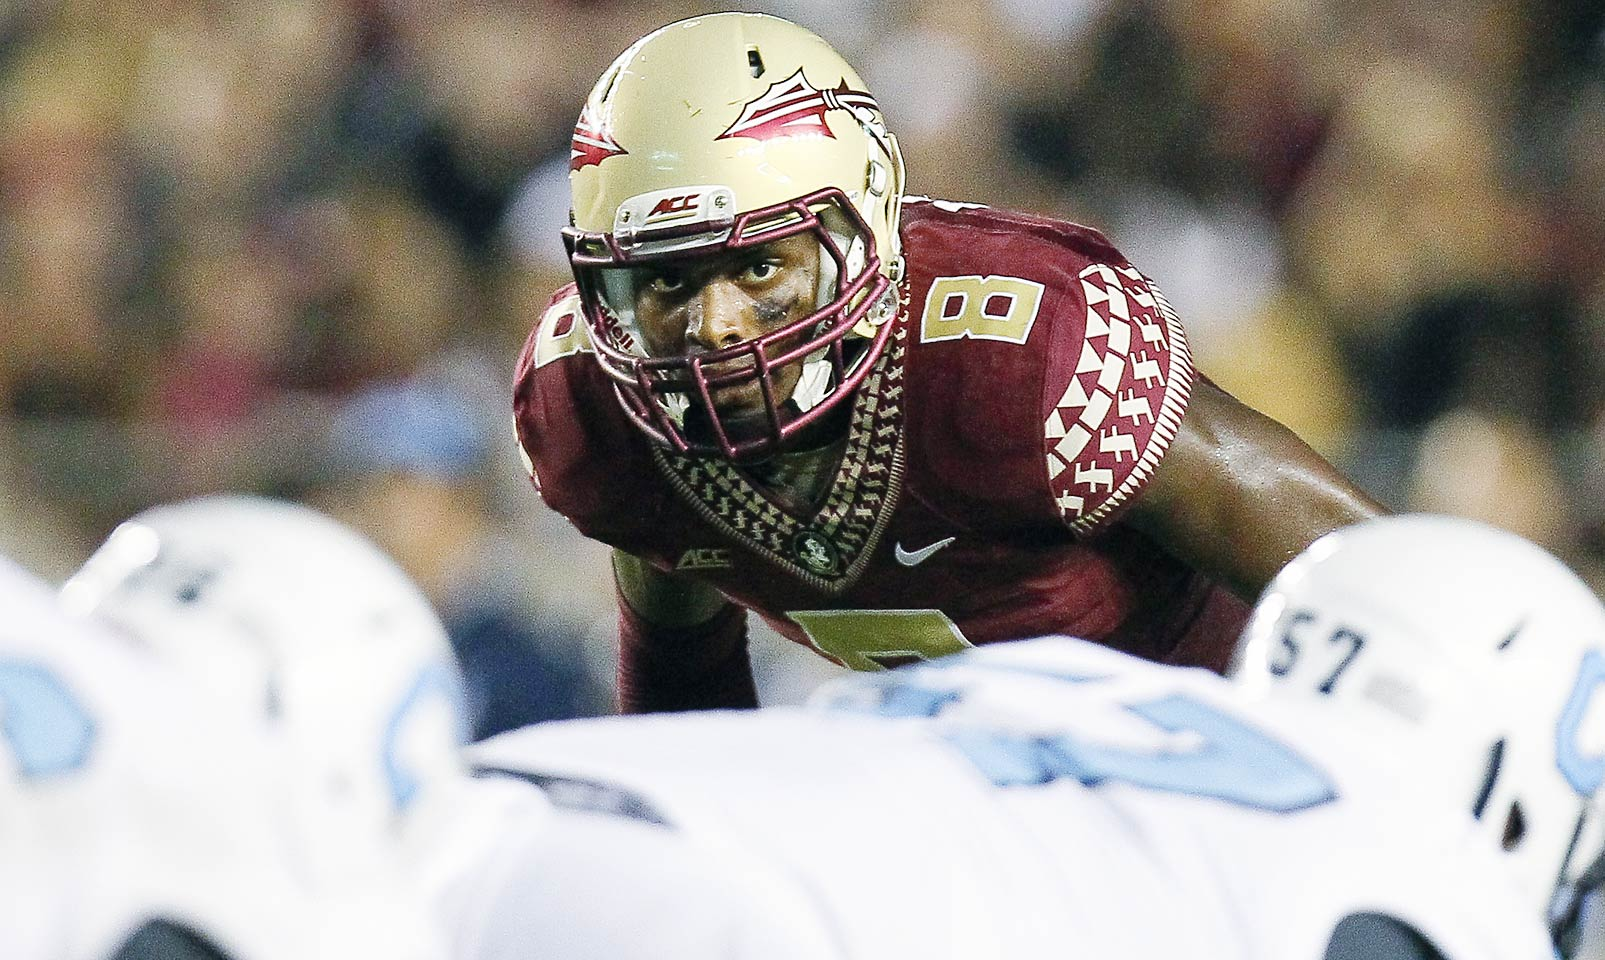 Ramsey enters his third year at Florida State as one of the best cornerbacks in college football. Ramsey started as a true freshman on the Seminoles' 2013 national championship squad and has only improved since. It would be a surprise if quarterbacks test him often.